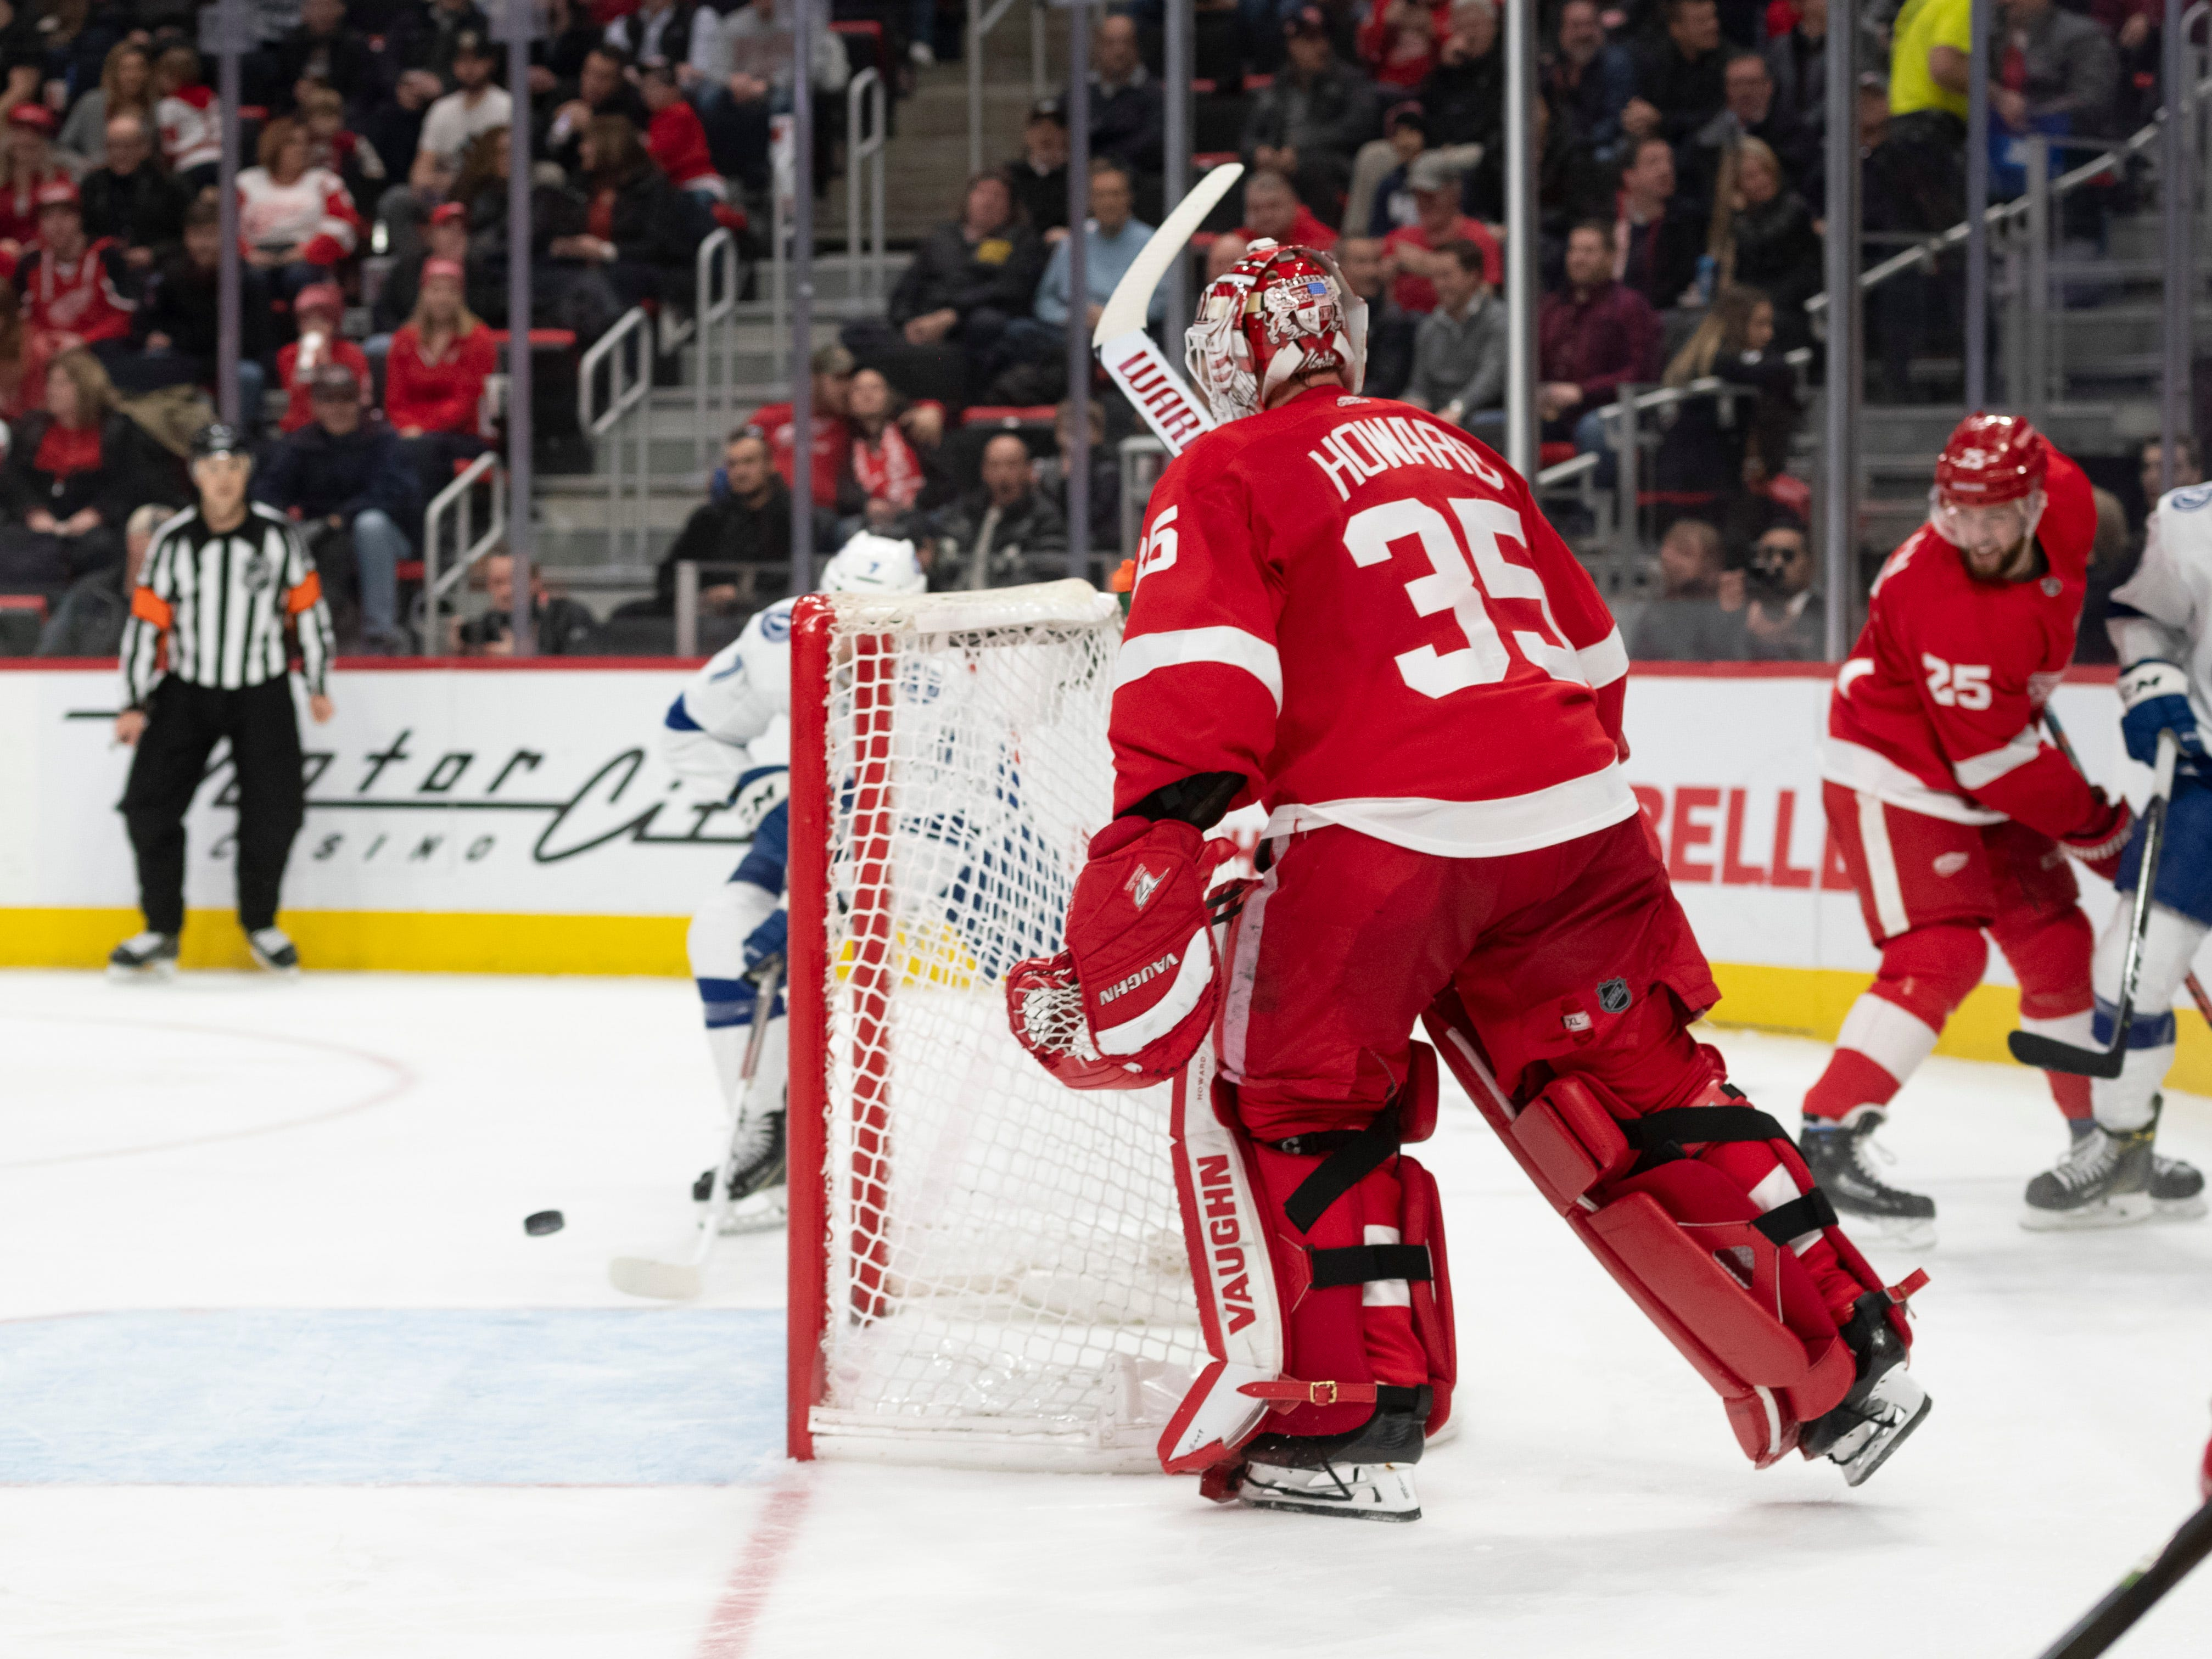 Detroit goaltender Jimmy Howard leaves the net wide open while trying to clear the puck which resulted in an easy goal by Tampa Bay right wing Mathieu Joseph in the second period.